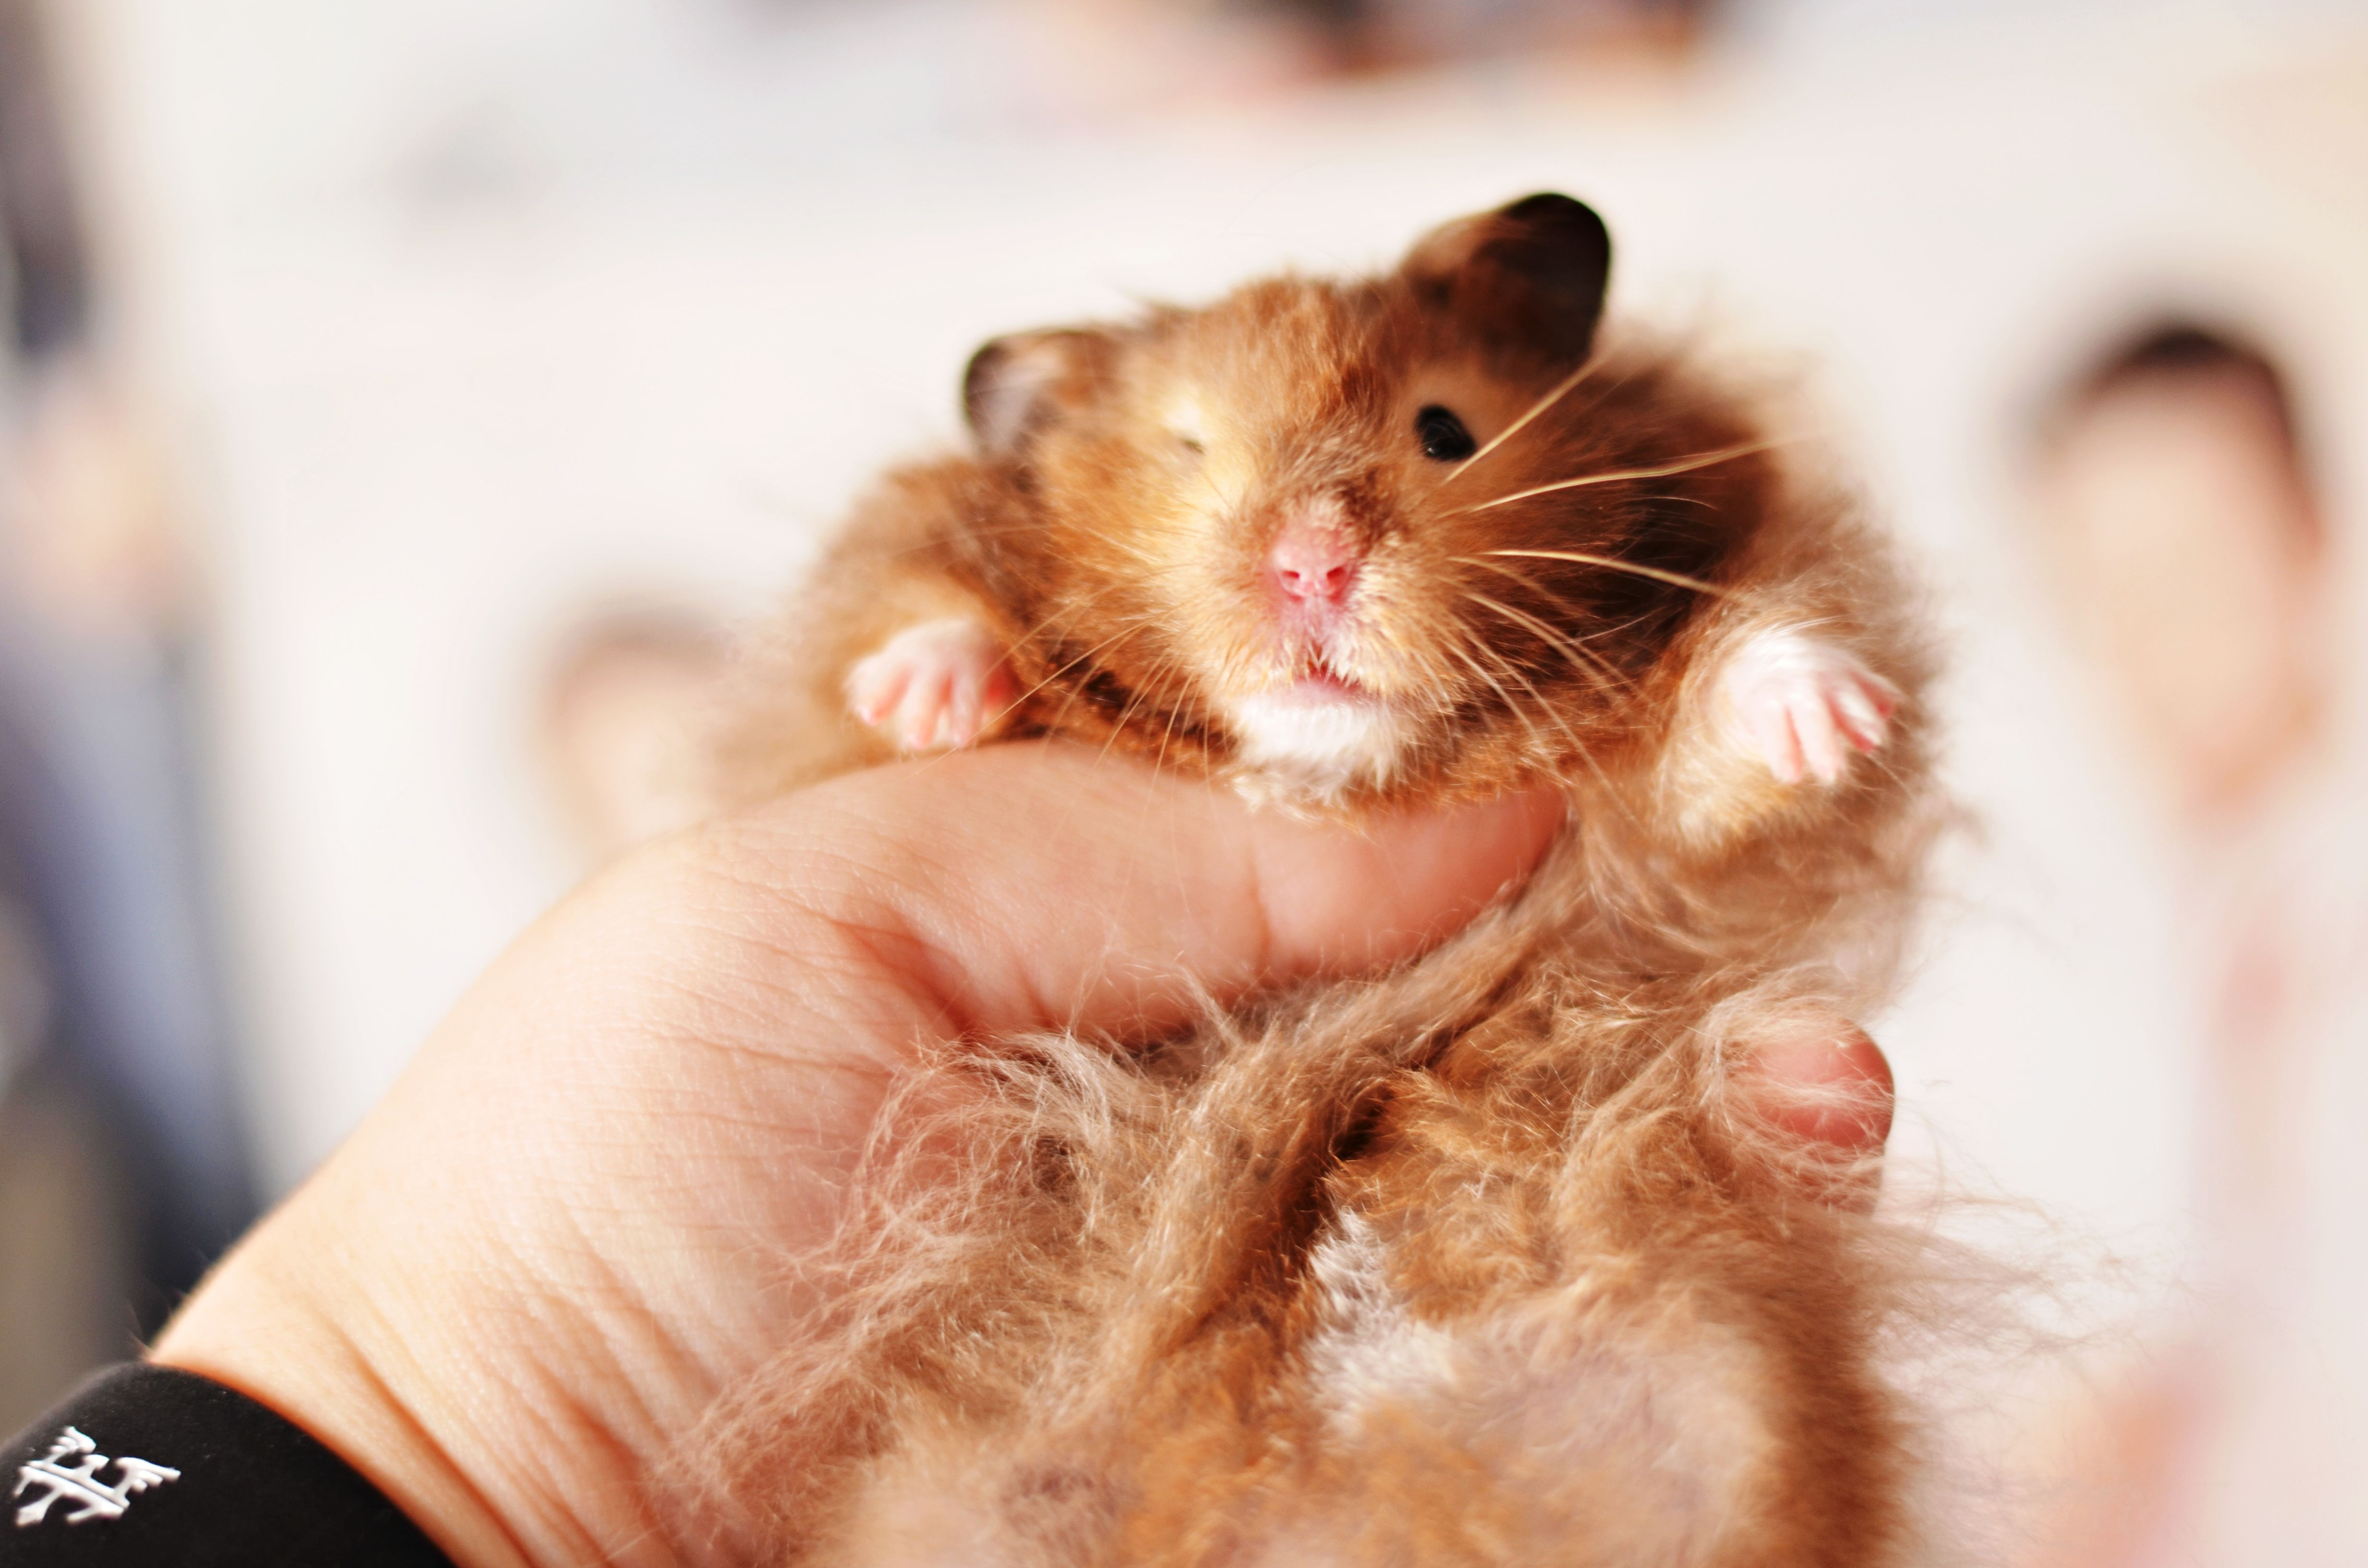 Cuddling With Beau The Cute Syrian Hamster Sable Long Haired Photography By Christine Black Themadgirl